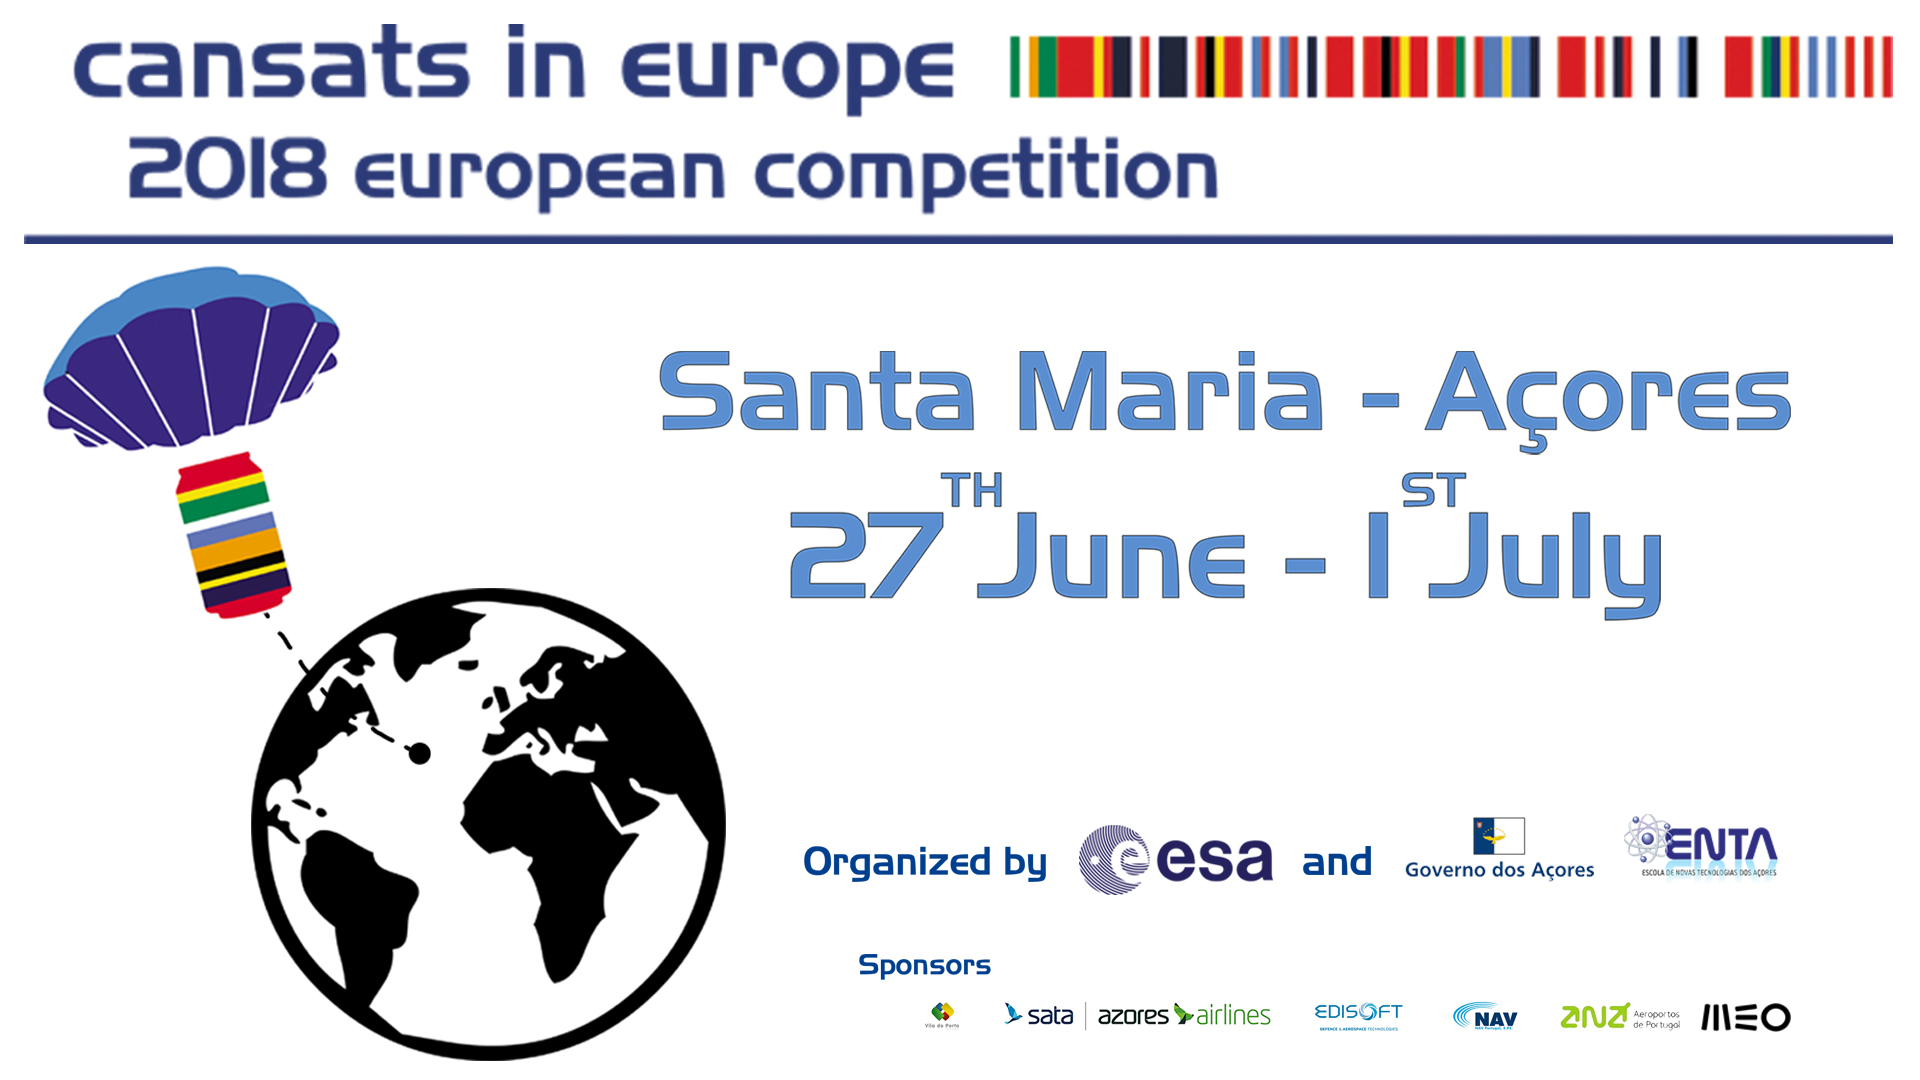 And the 2018 European CANSAT Competition finalists are….